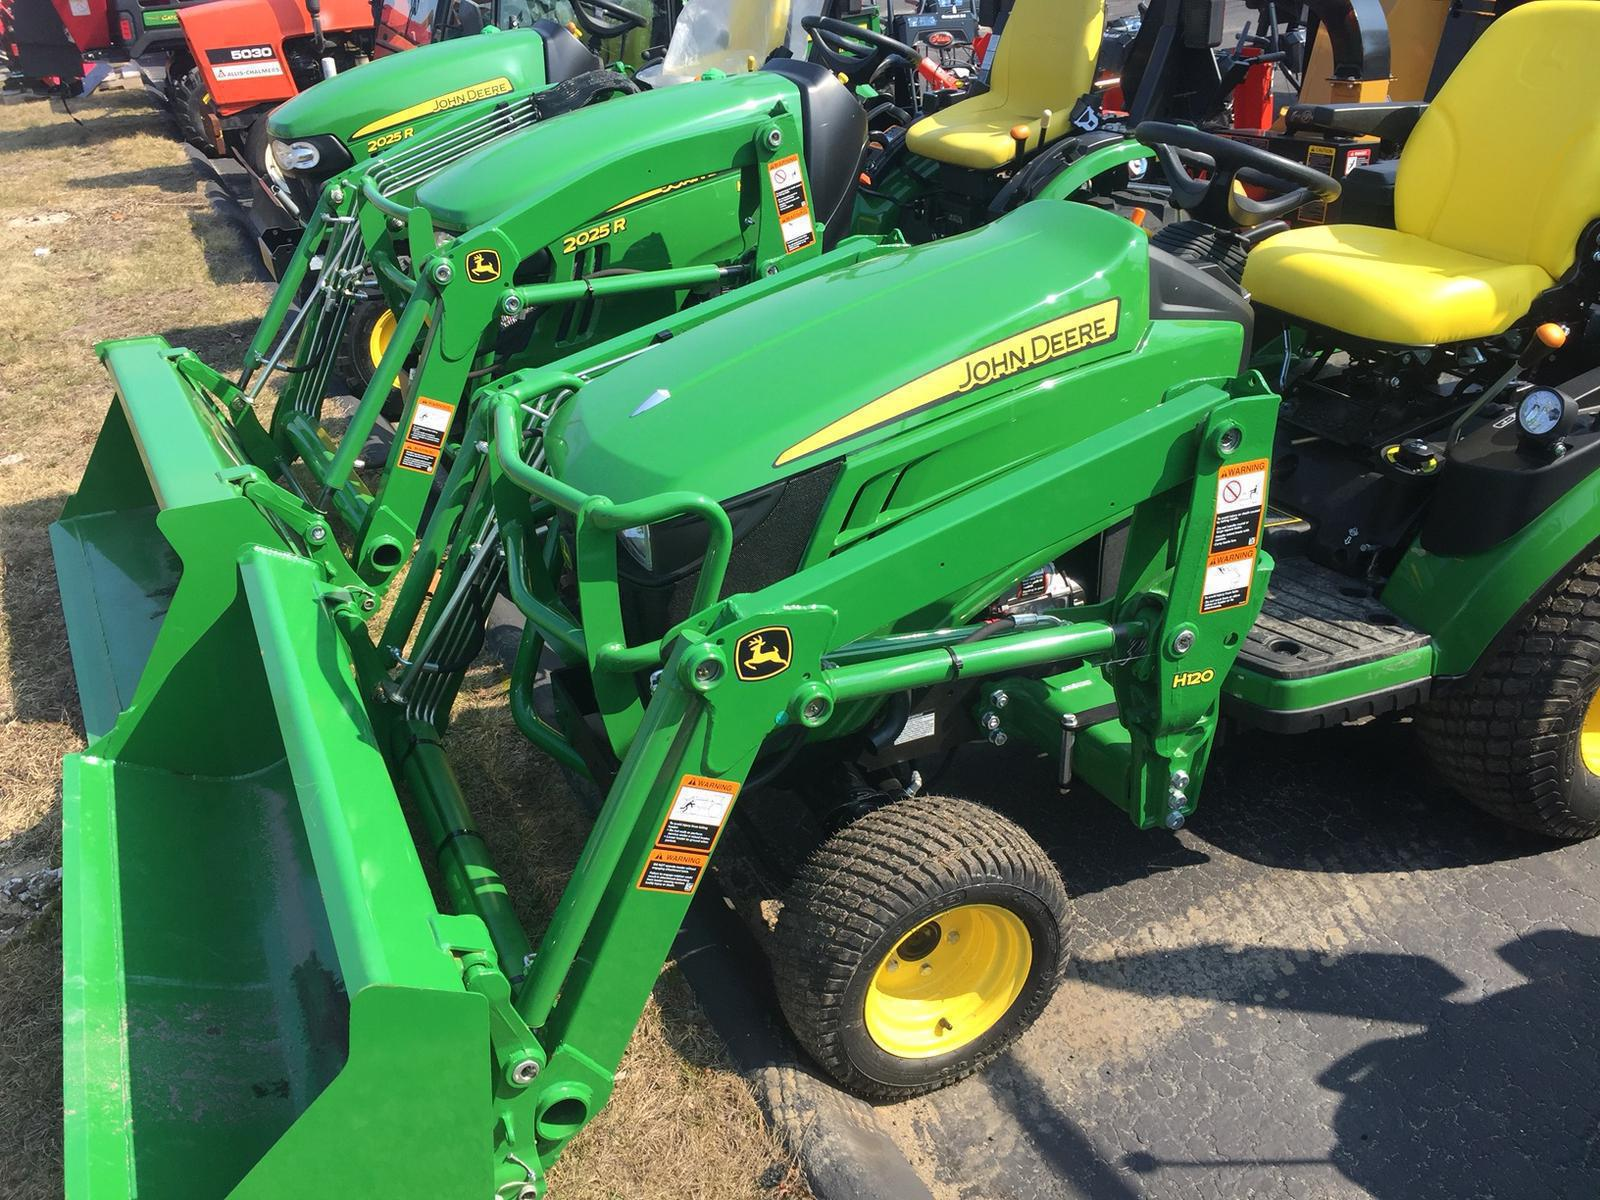 Inventory from John Deere New England Power Equipment Old